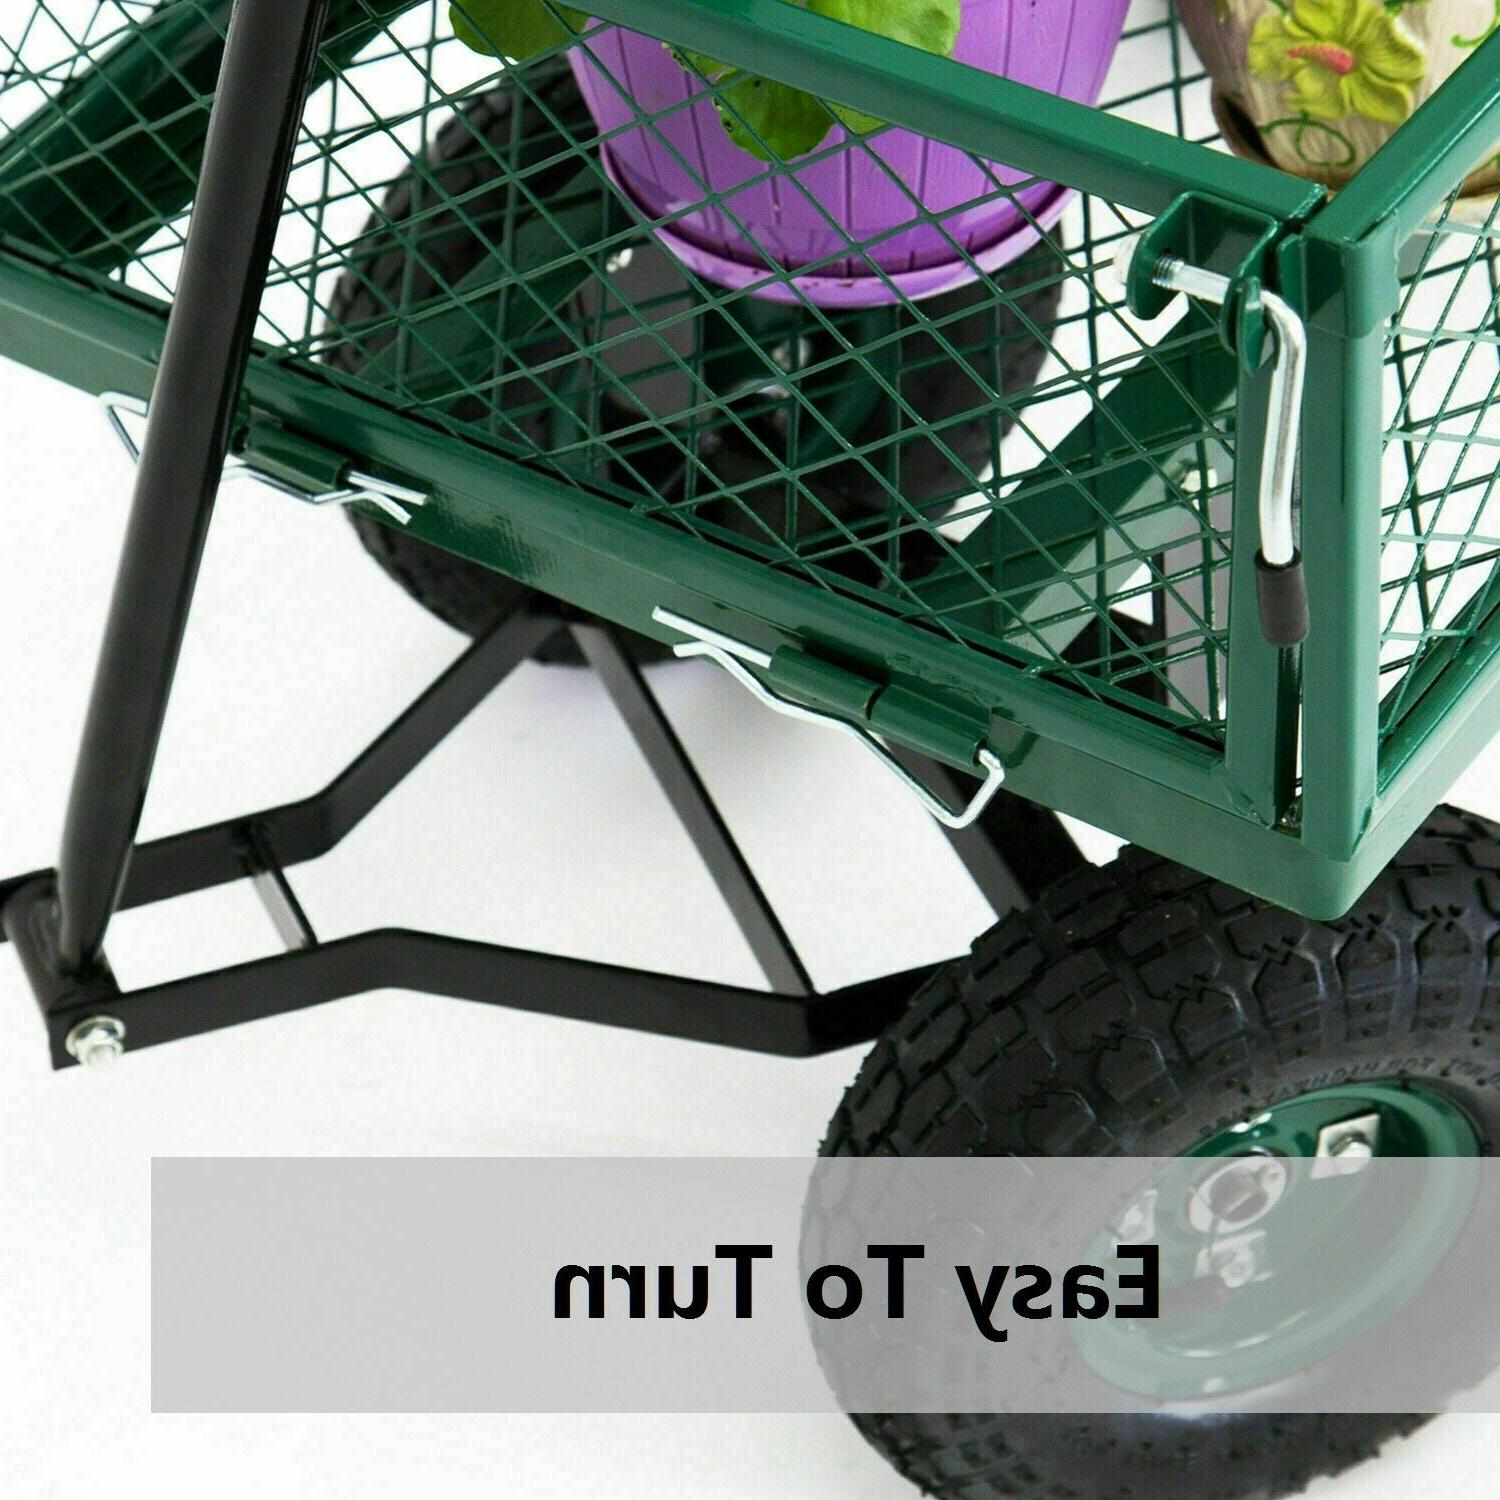 Outdoor Lawn Garden Utility Yard Trailer Removable Sides